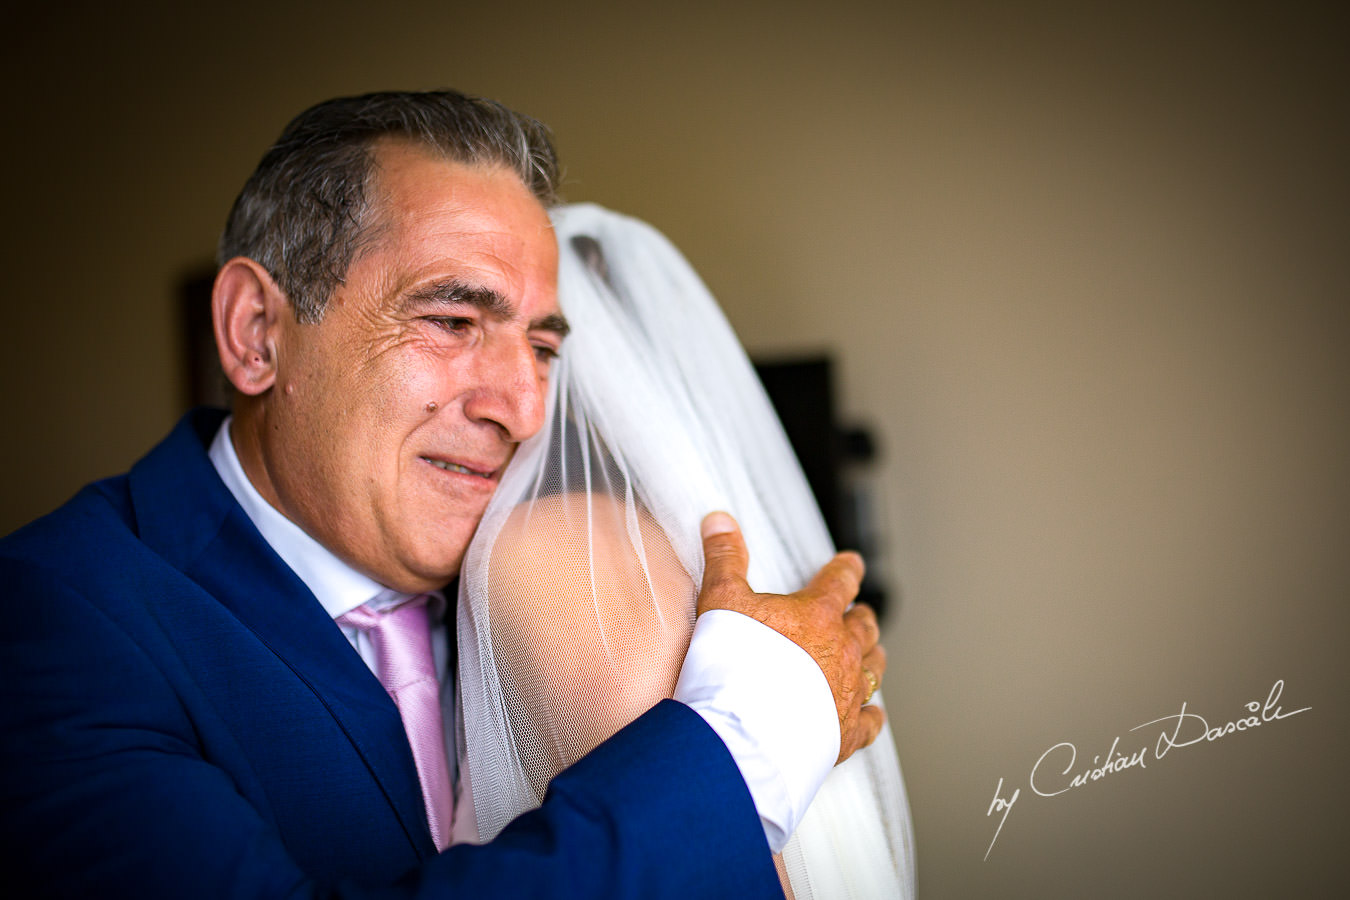 The father of the bride seeing his daughter for the first time during a Beautiful Wedding at Elias Beach Hotel captured by Cyprus Photographer Cristian Dascalu.